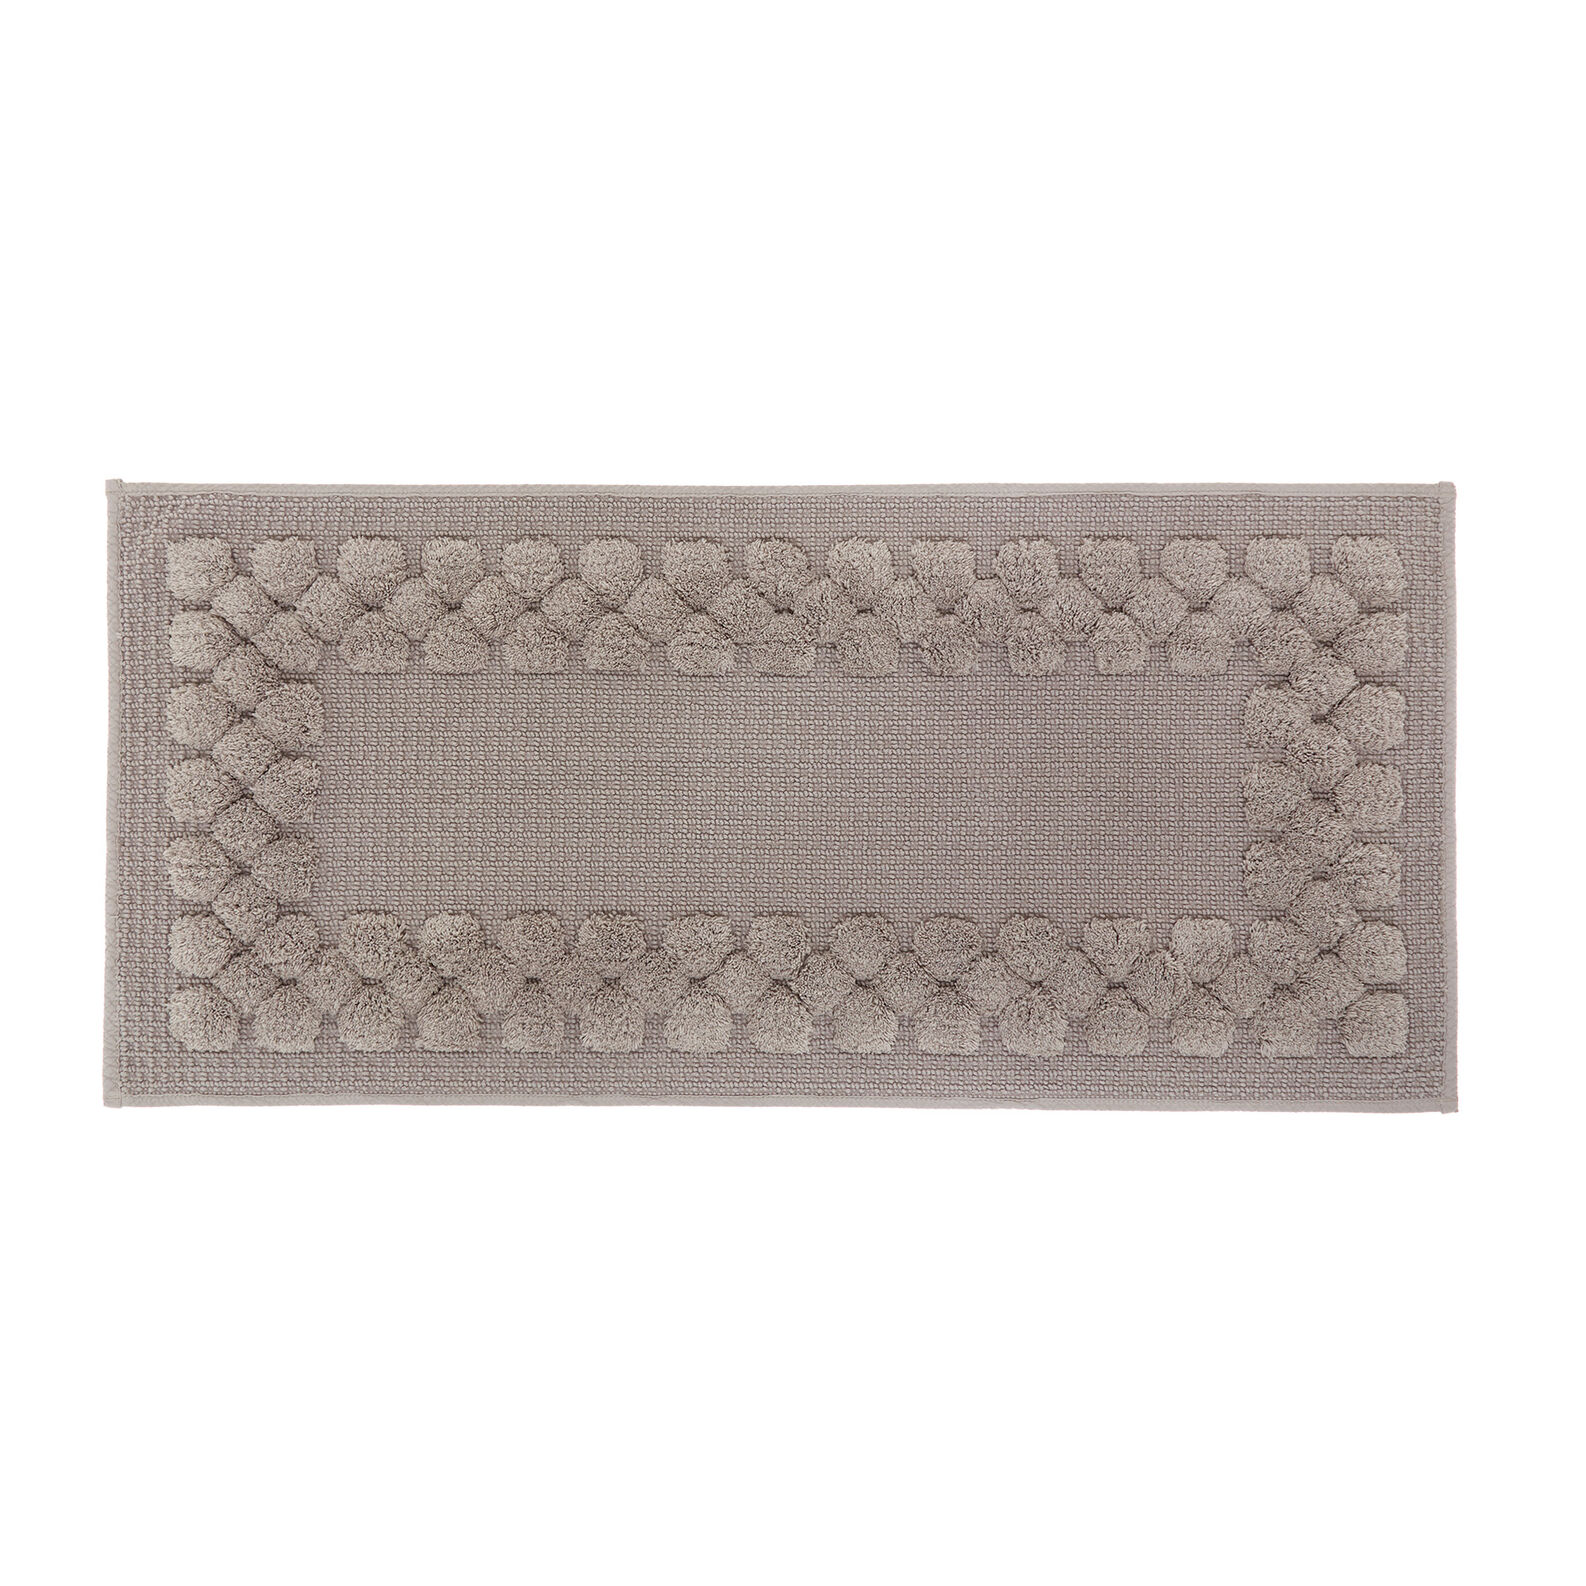 Bathroom cotton braids rug